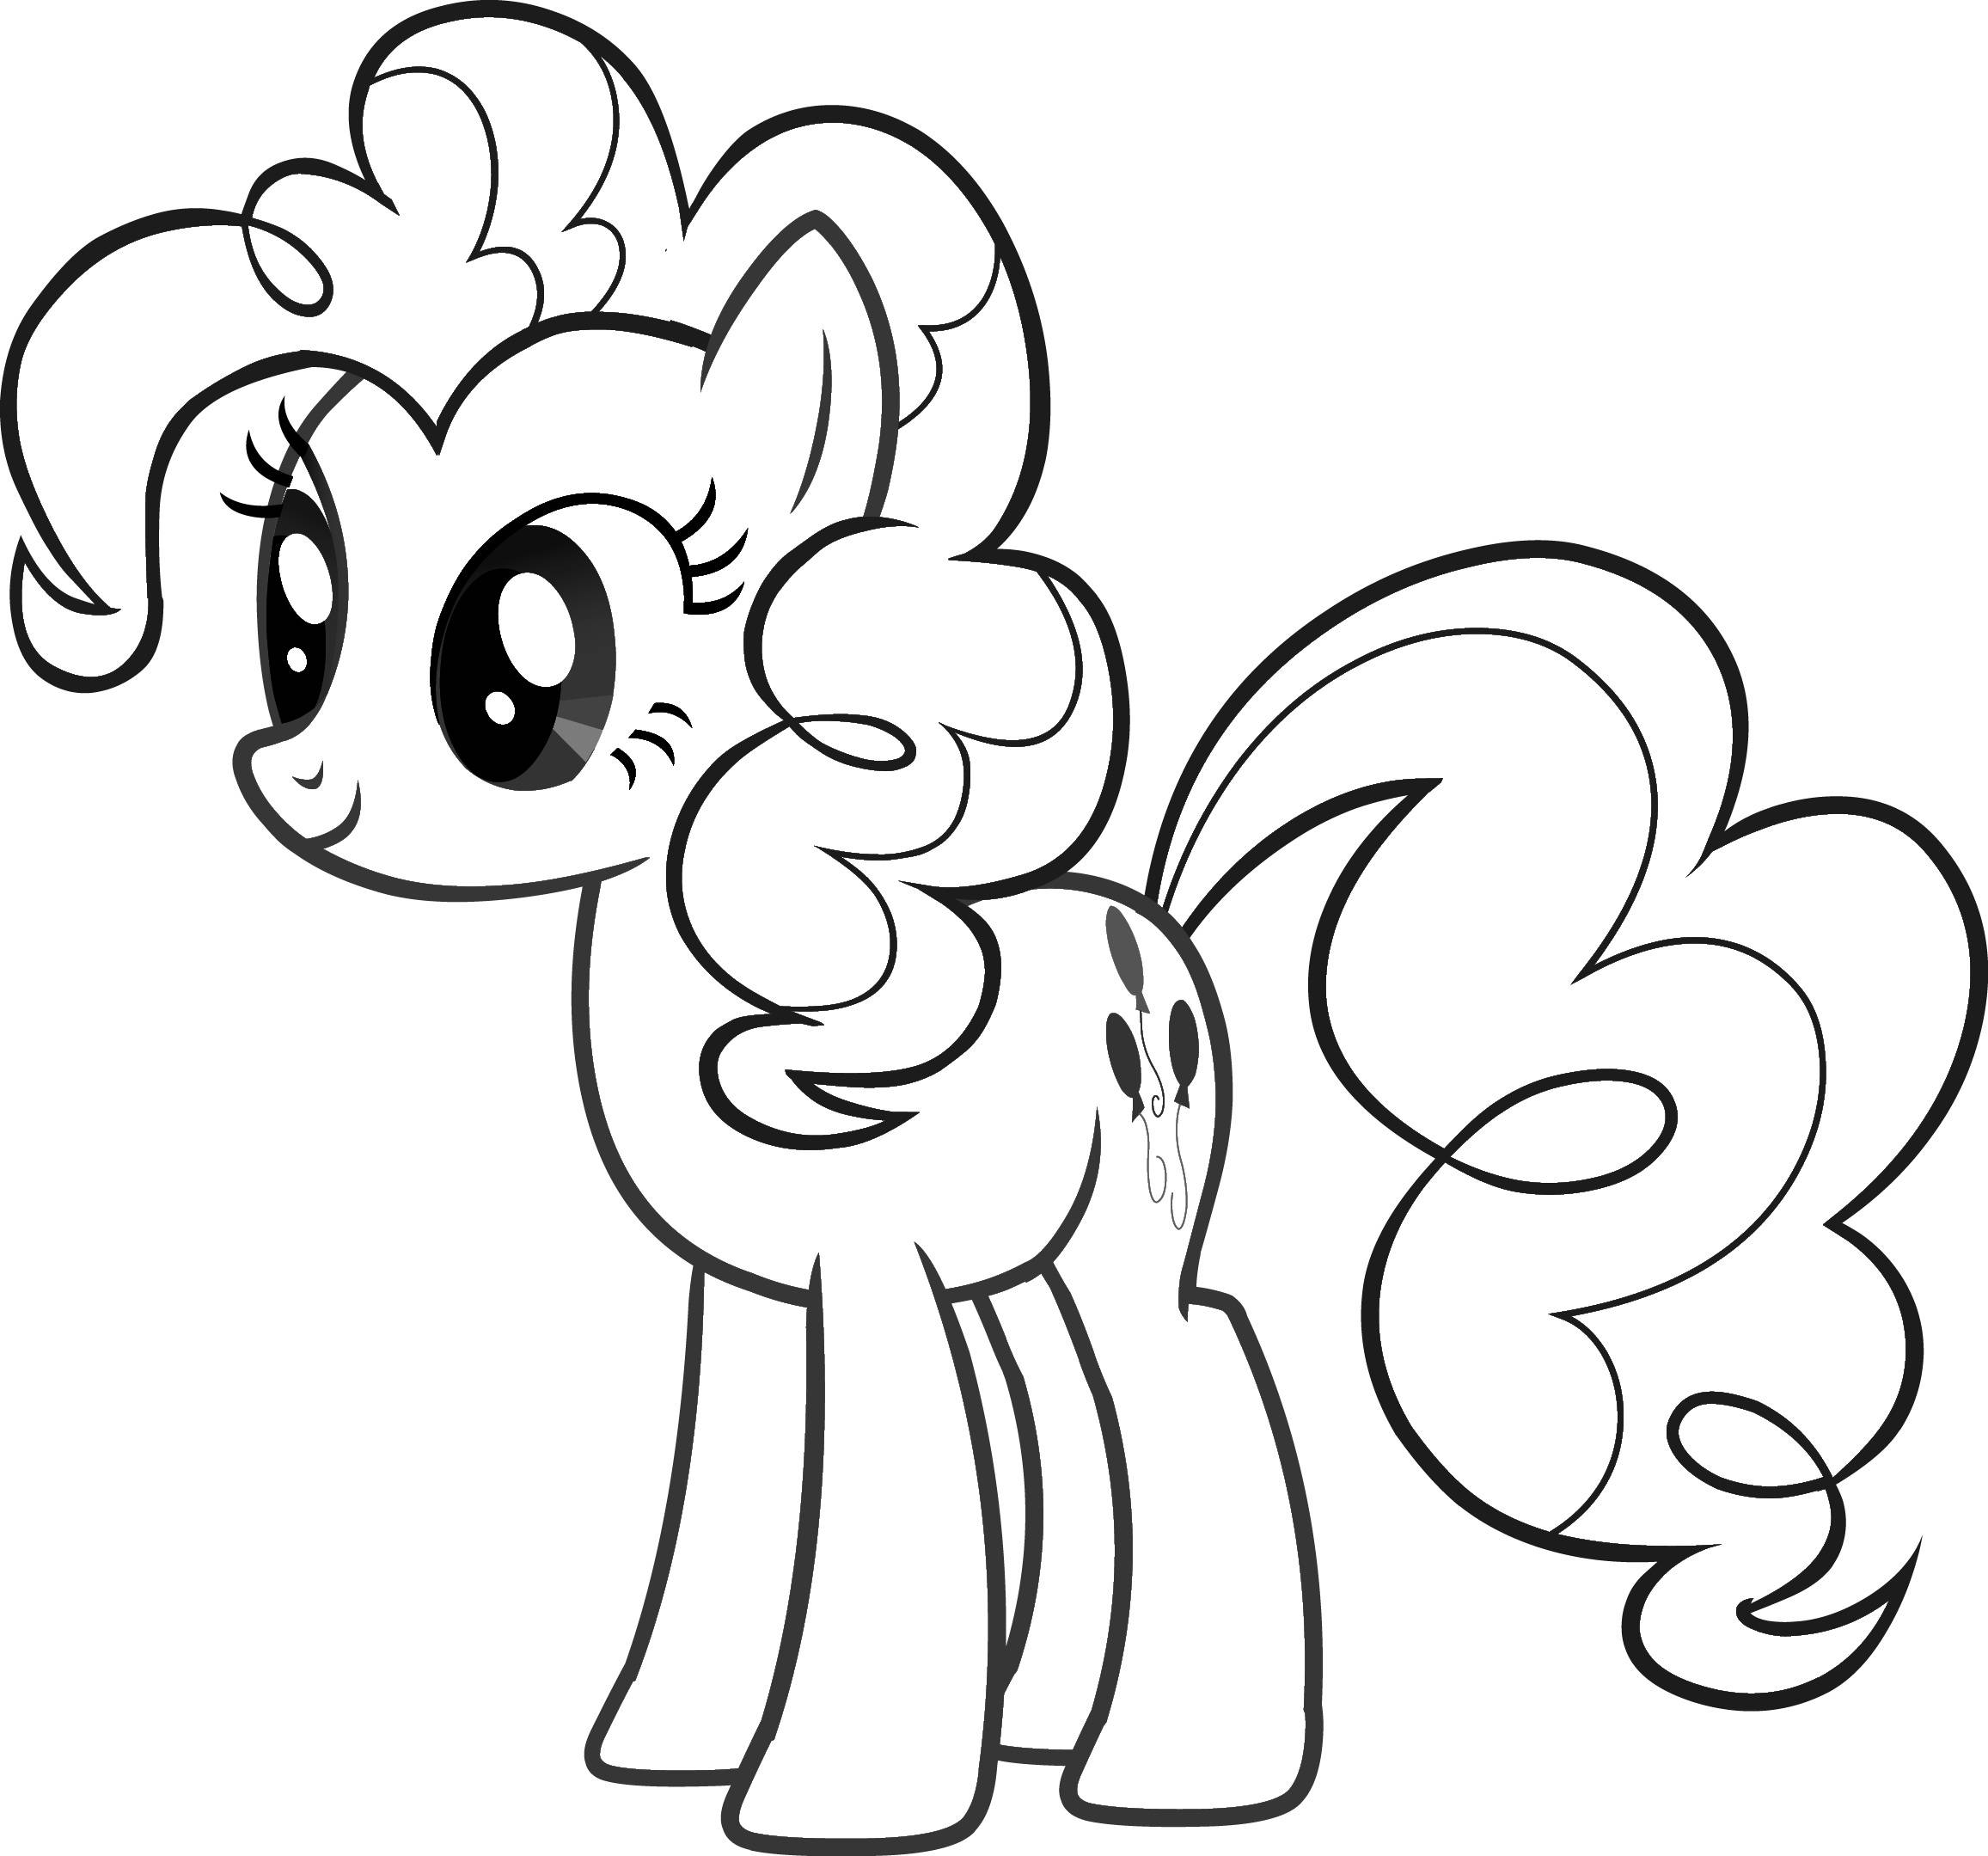 my little pony coloring pages - Kids Free Printable Coloring Pages